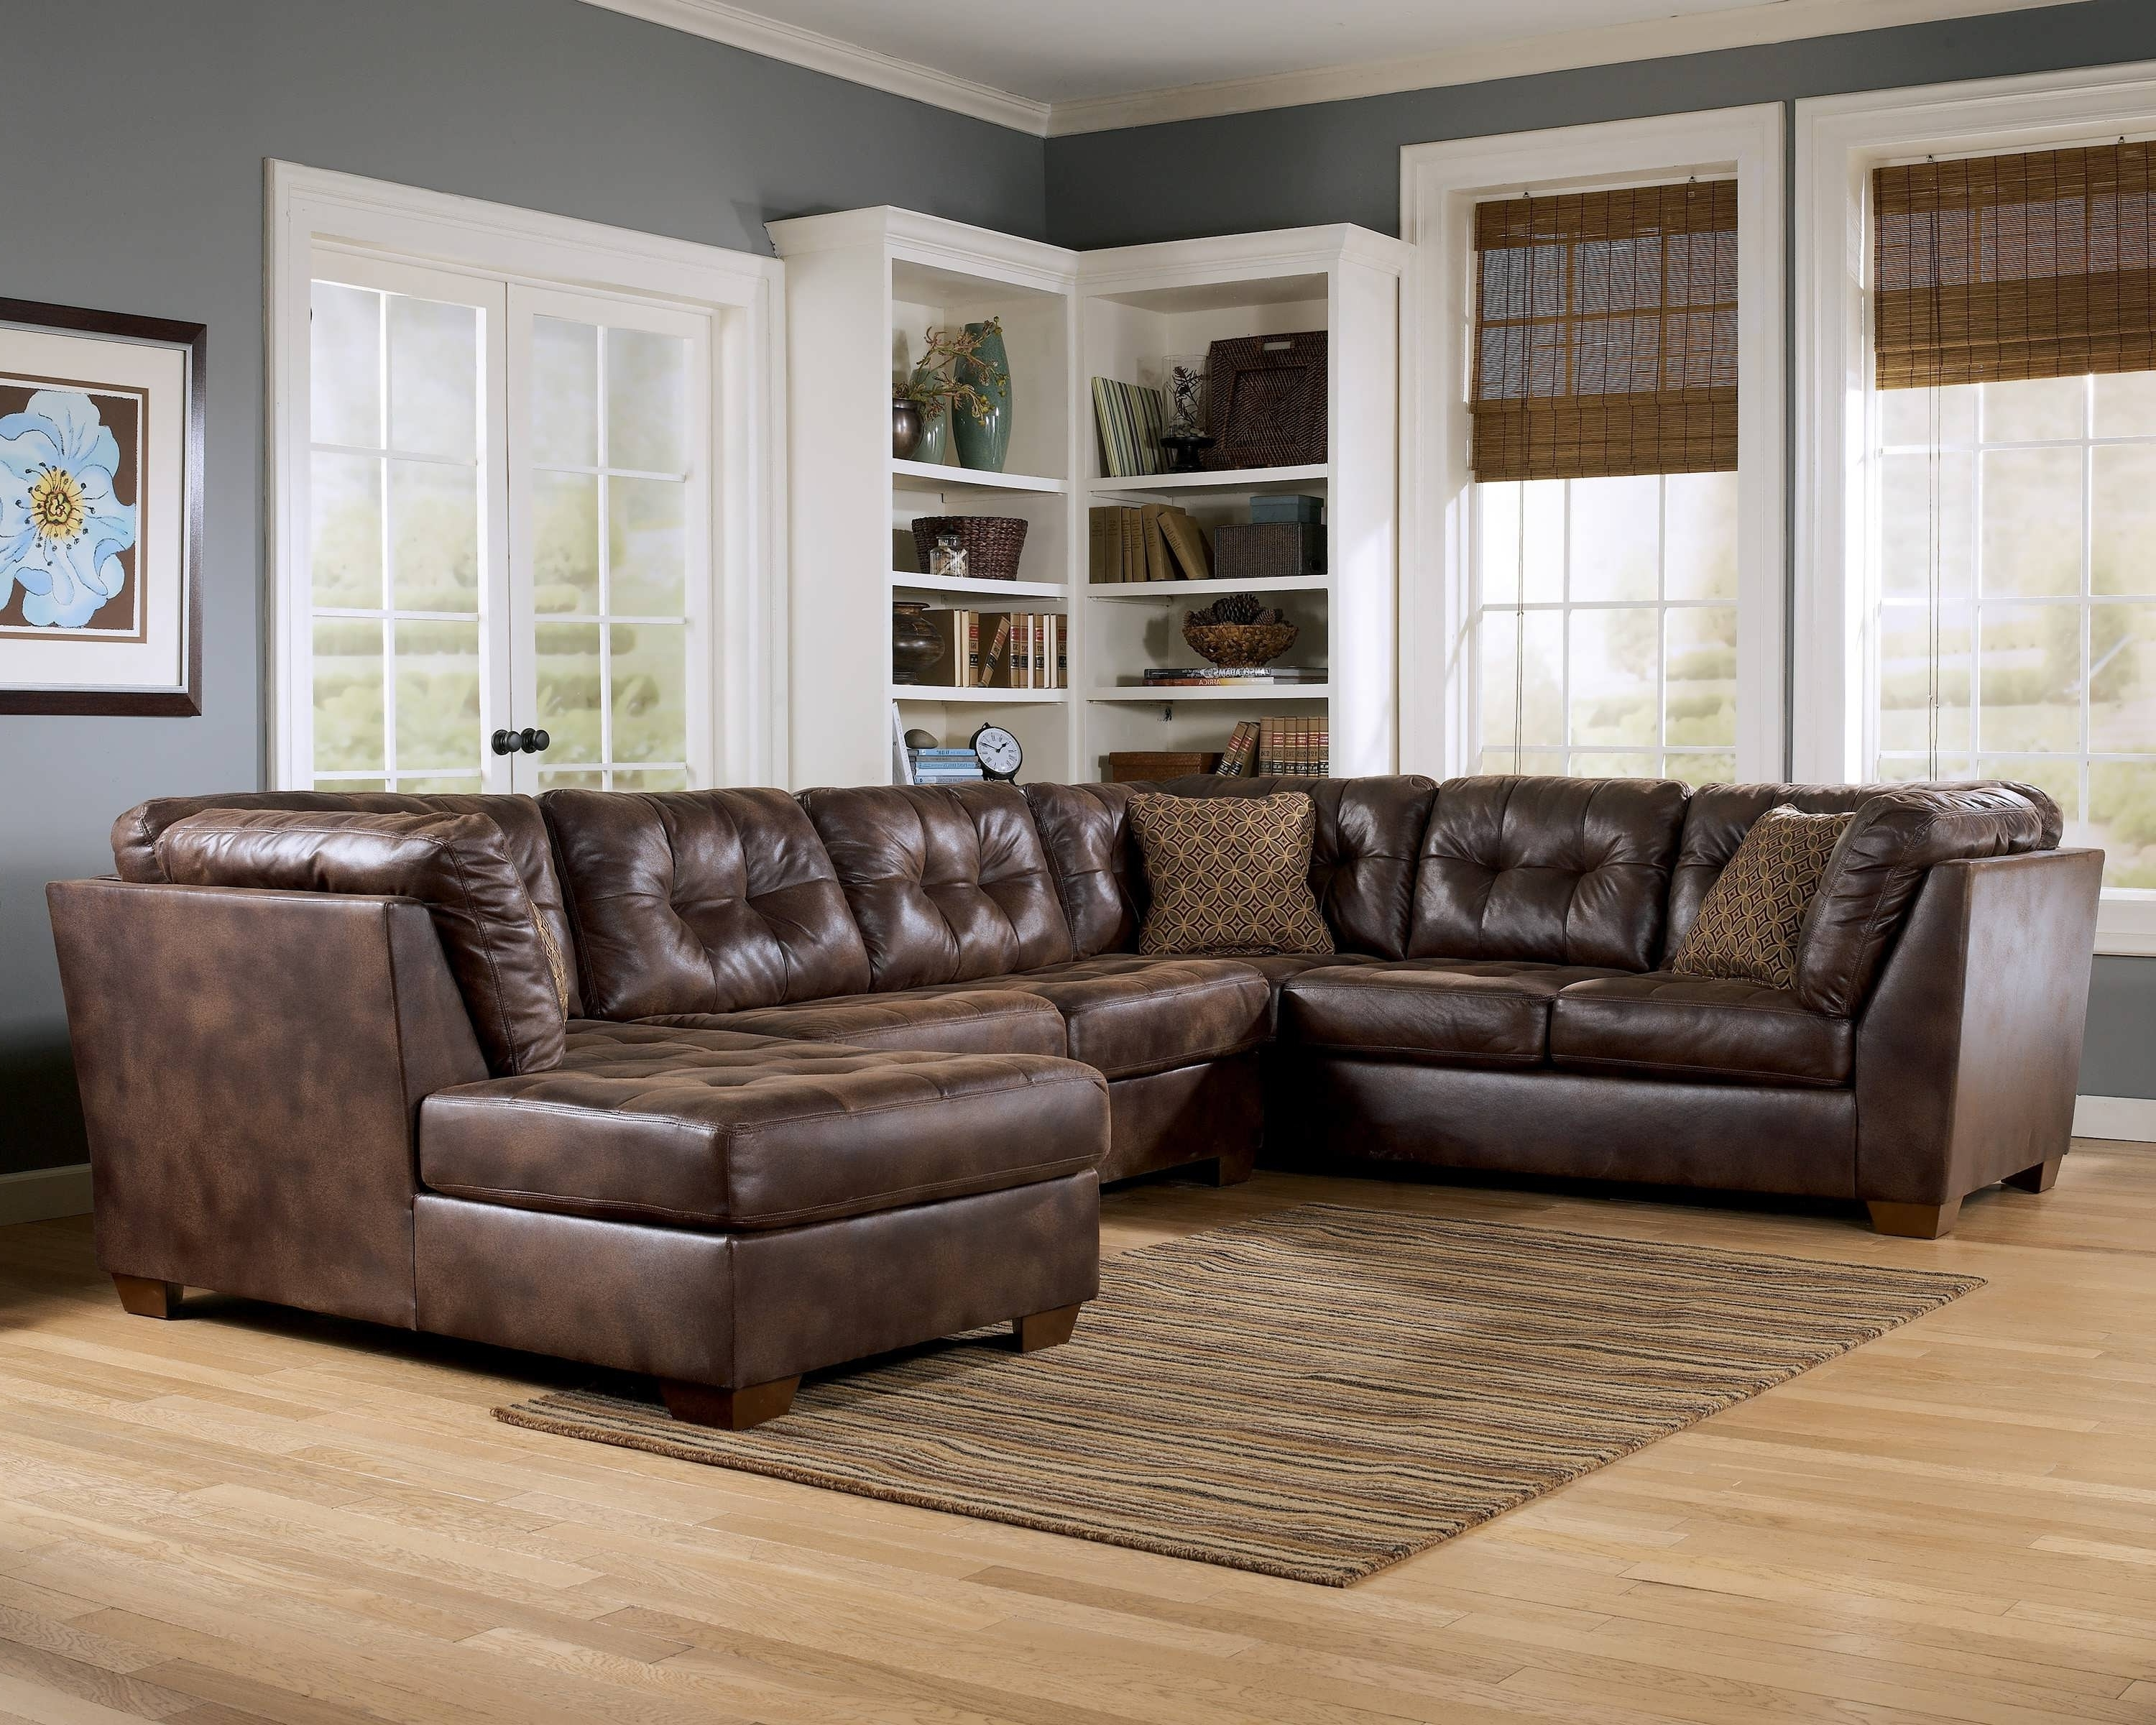 Memphis Tn Sectional Sofas For Most Up To Date Sofa Leather Sectional Sofas Collection Of Brown Black Couch For (View 8 of 20)